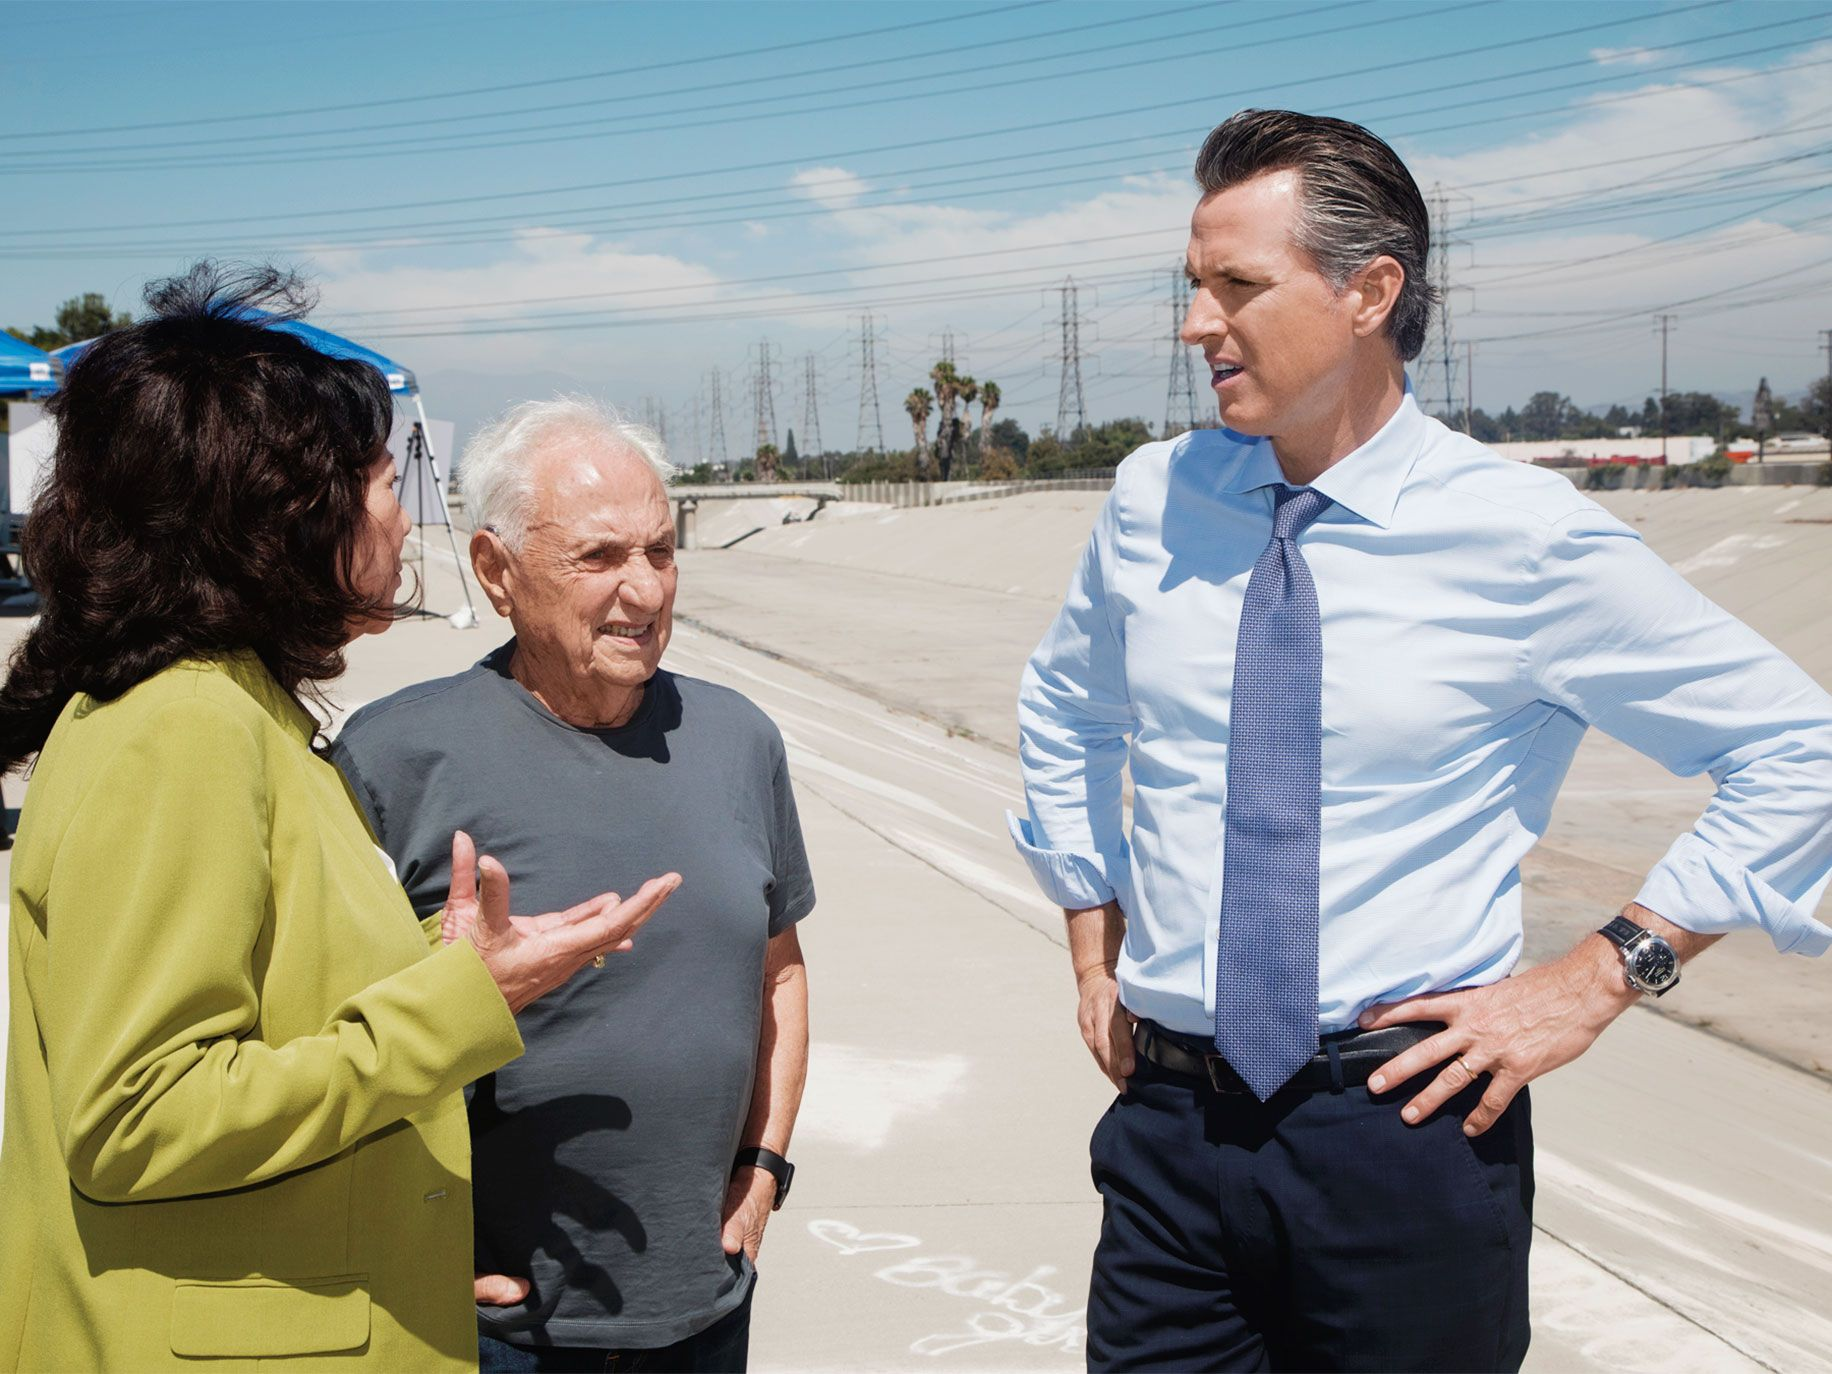 L.A. County supervisor Hilda Solis, architect Frank Gehry, and then–lieutenant governor Gavin Newsom (from left) visit the L.A. River in South Gate in 2018.